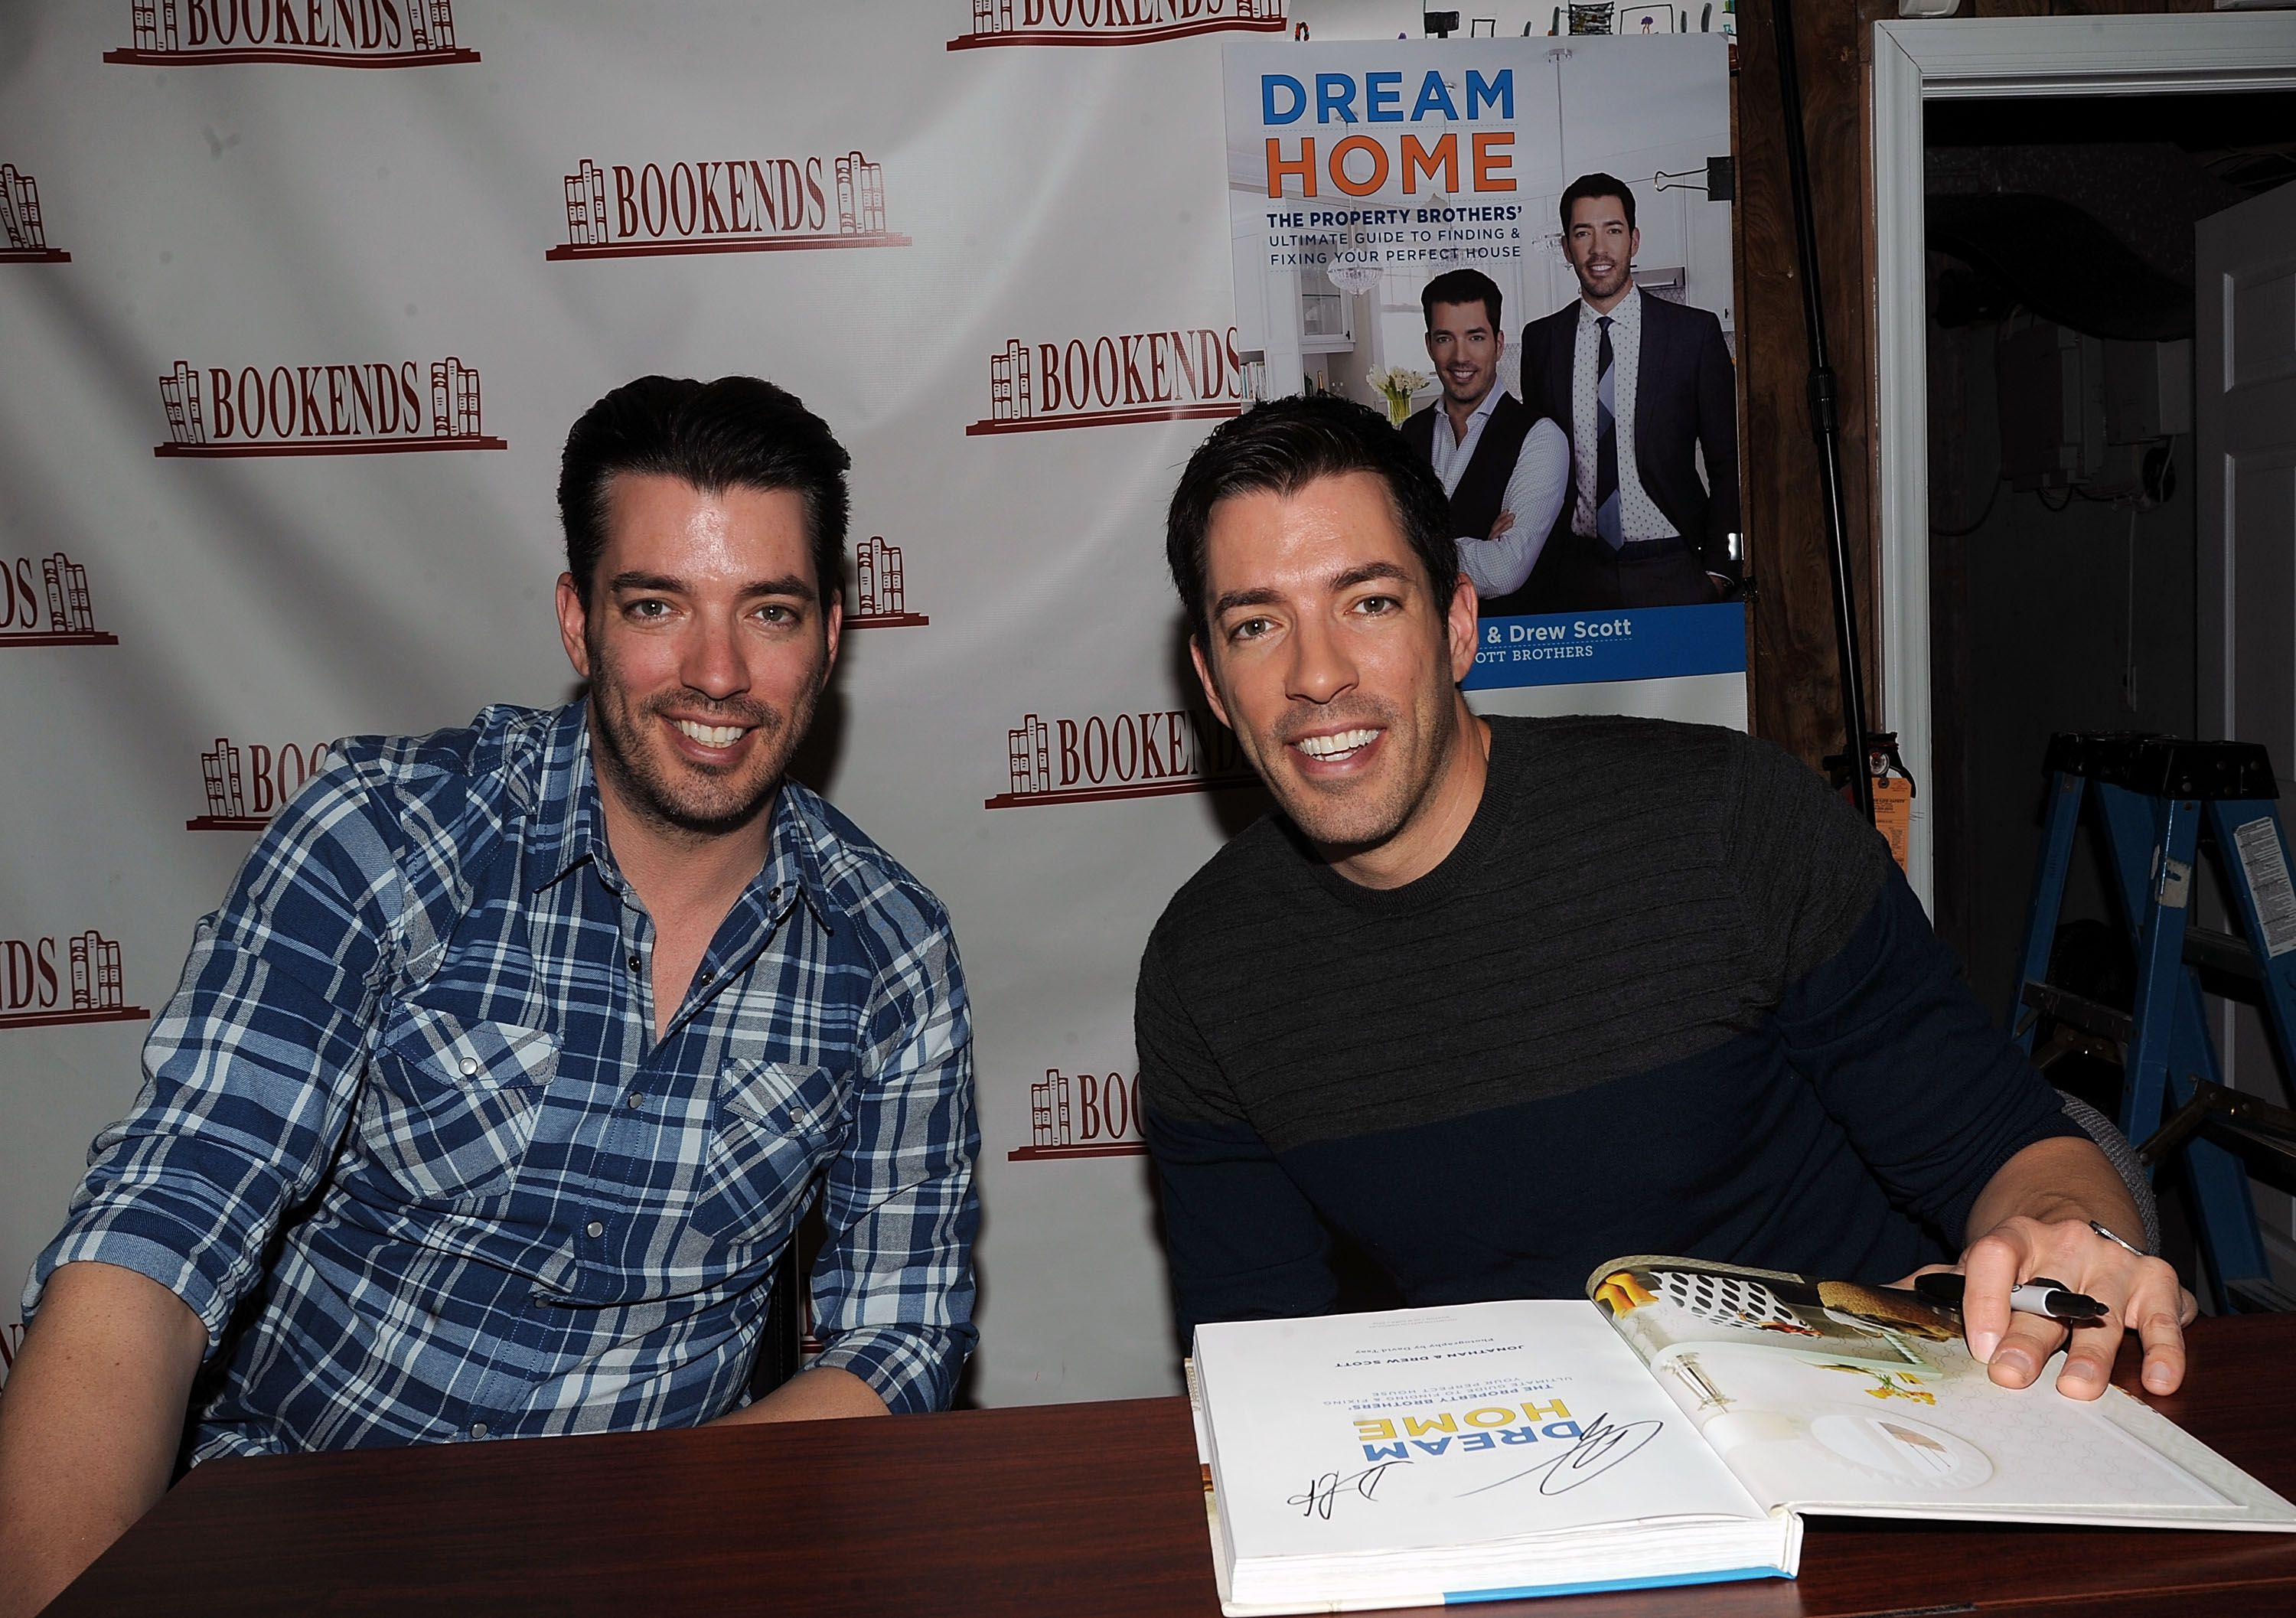 Casting call property brothers application